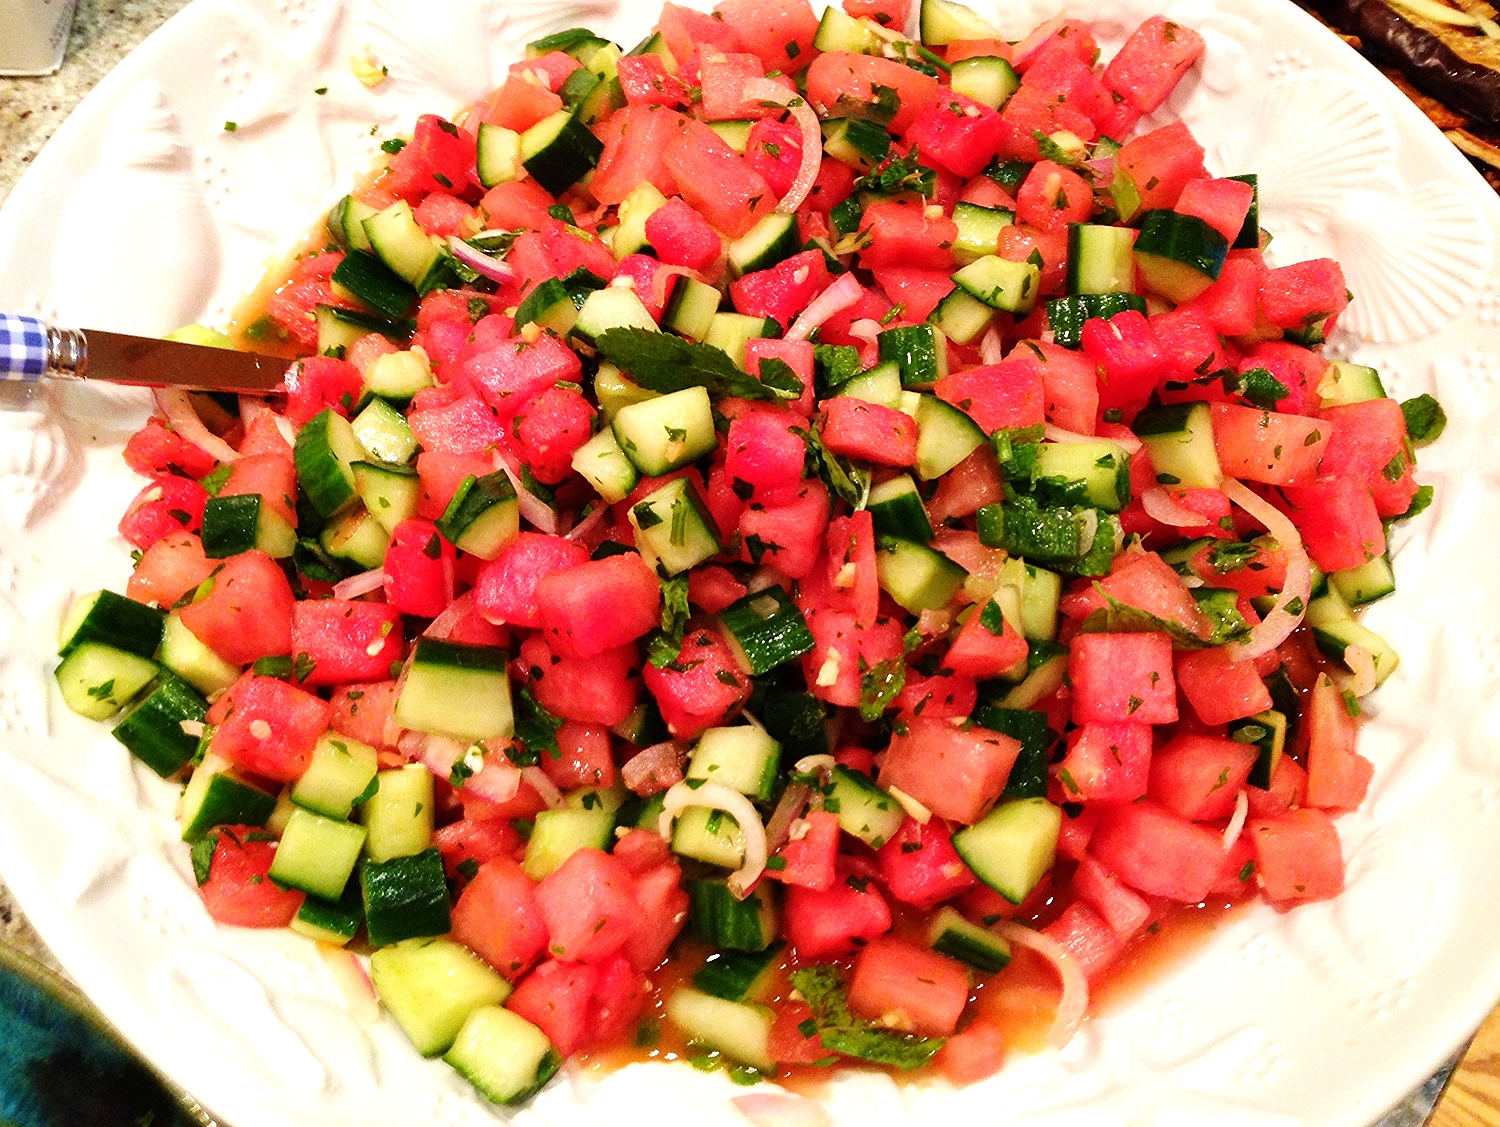 Thai watermelon and cucumber salad with red onion and mint